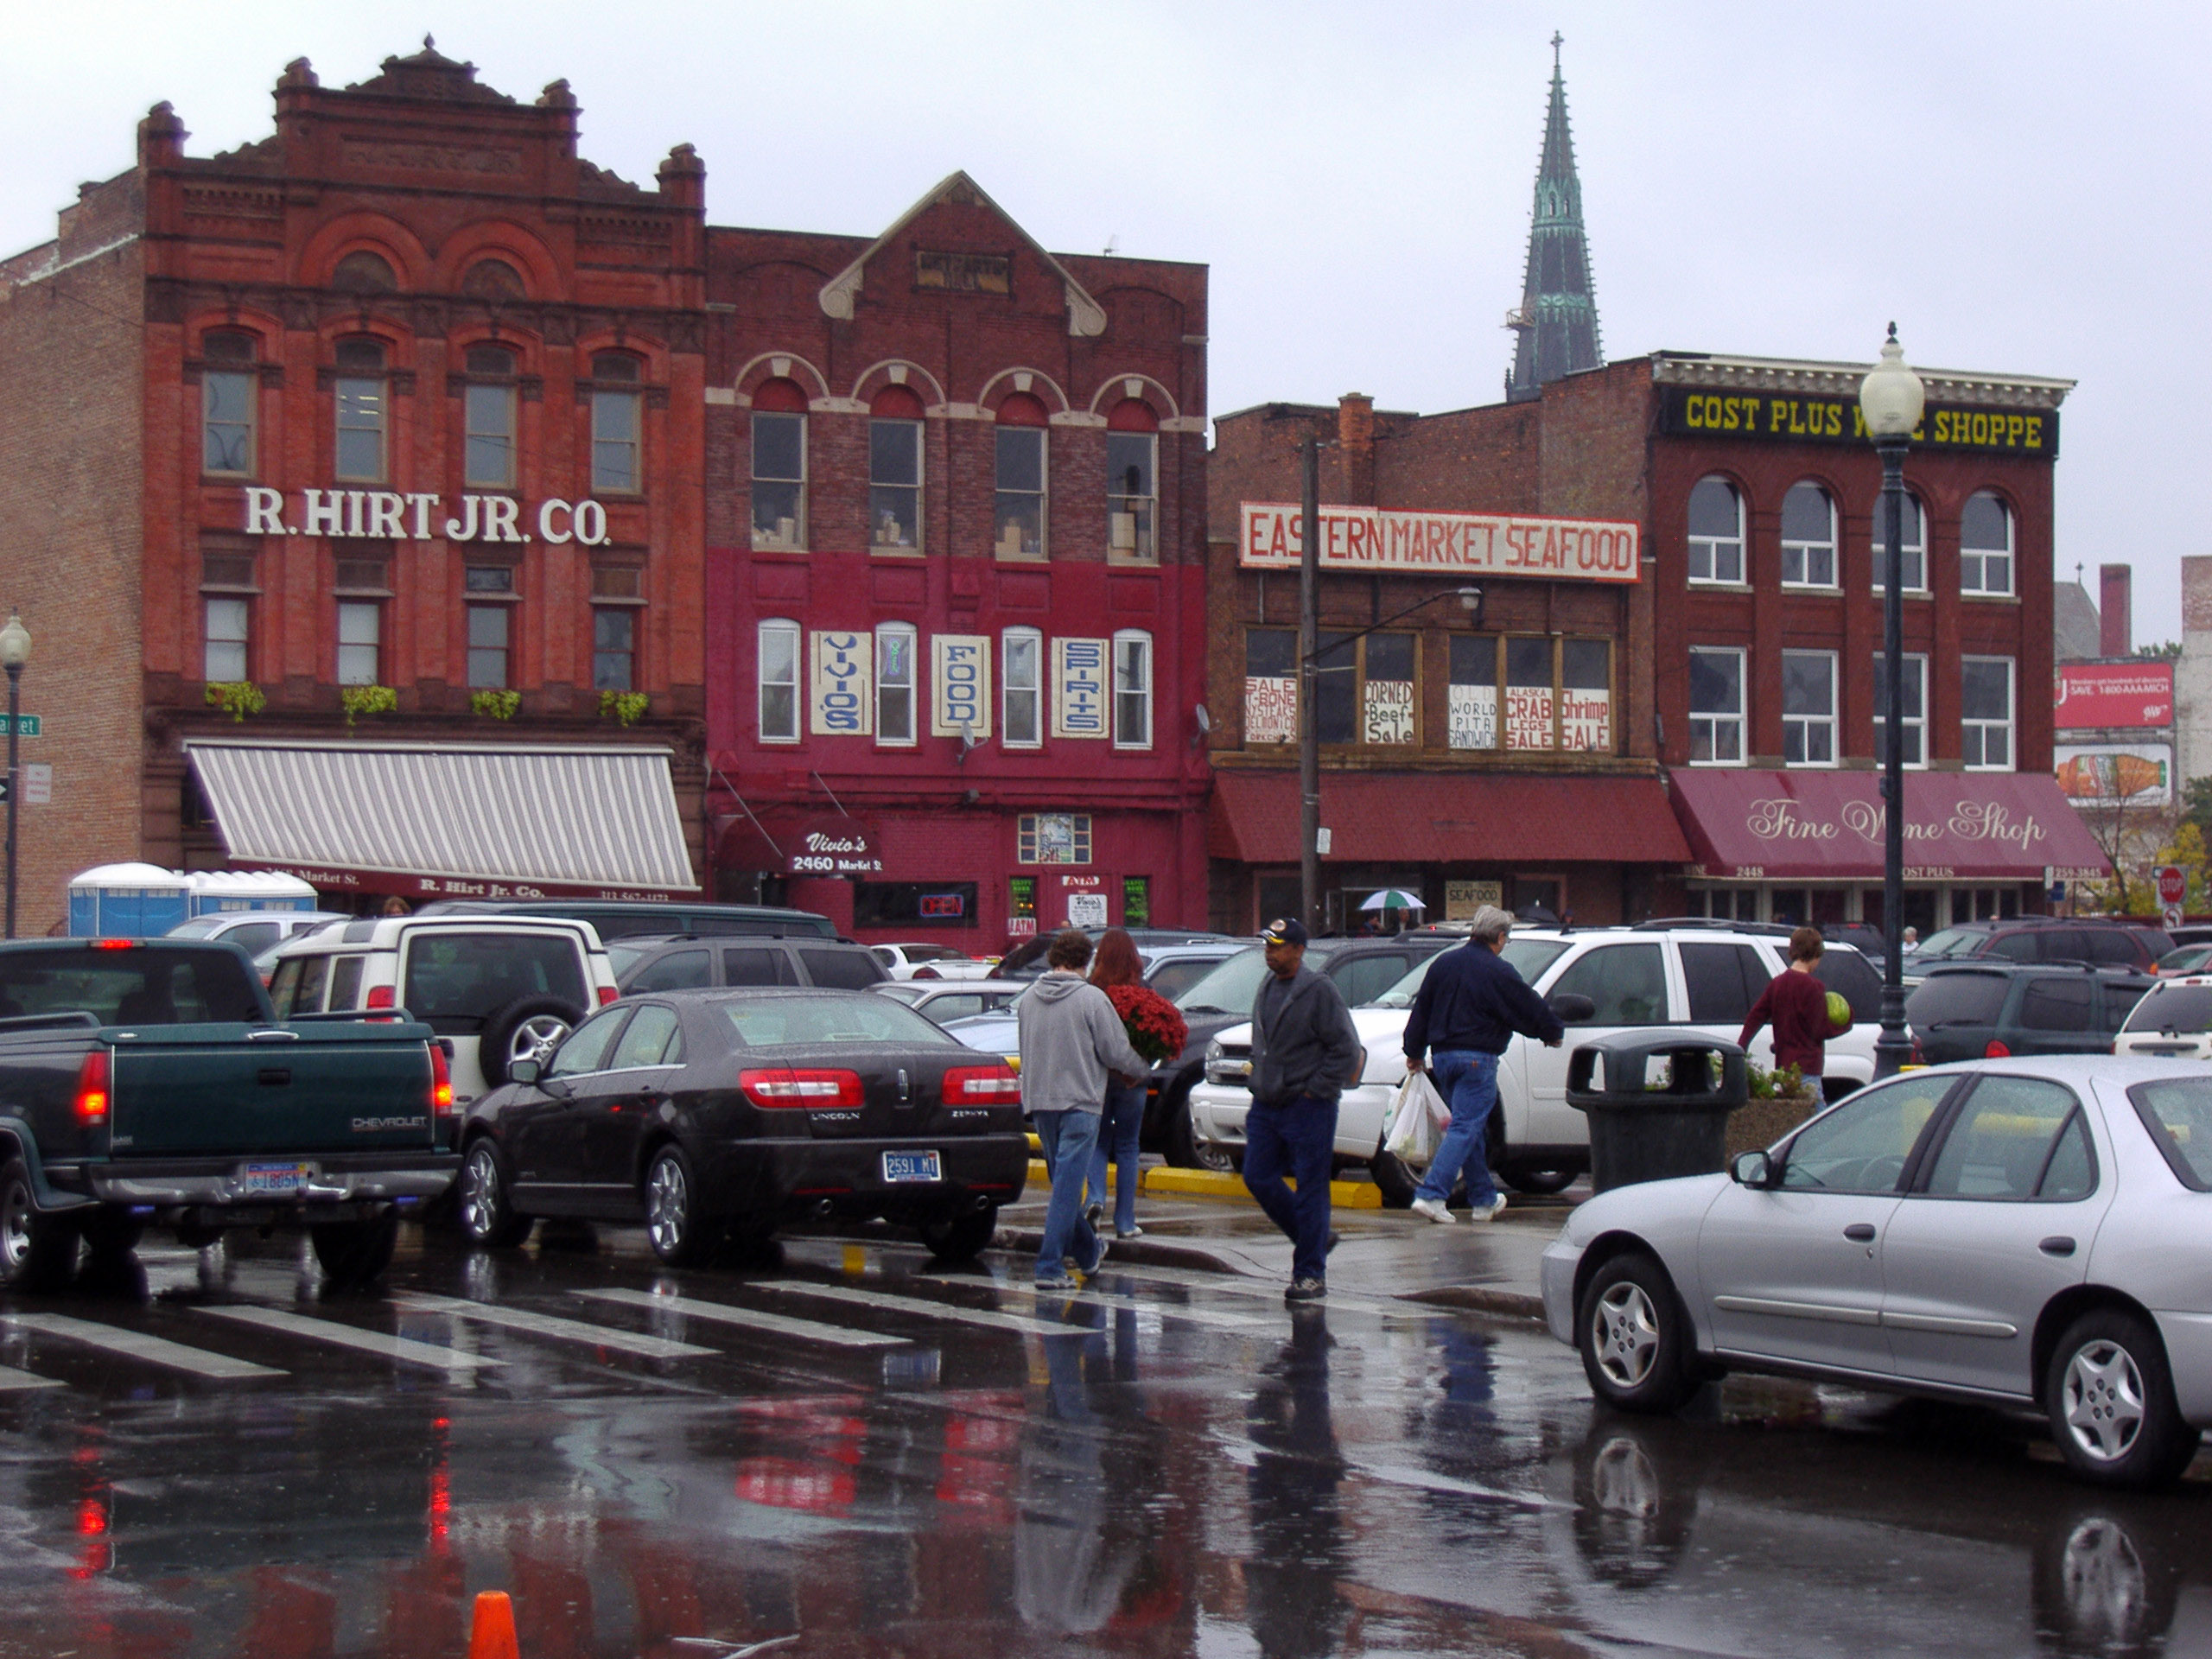 The R Hirt Jr Co In The Eastern Market Image Free